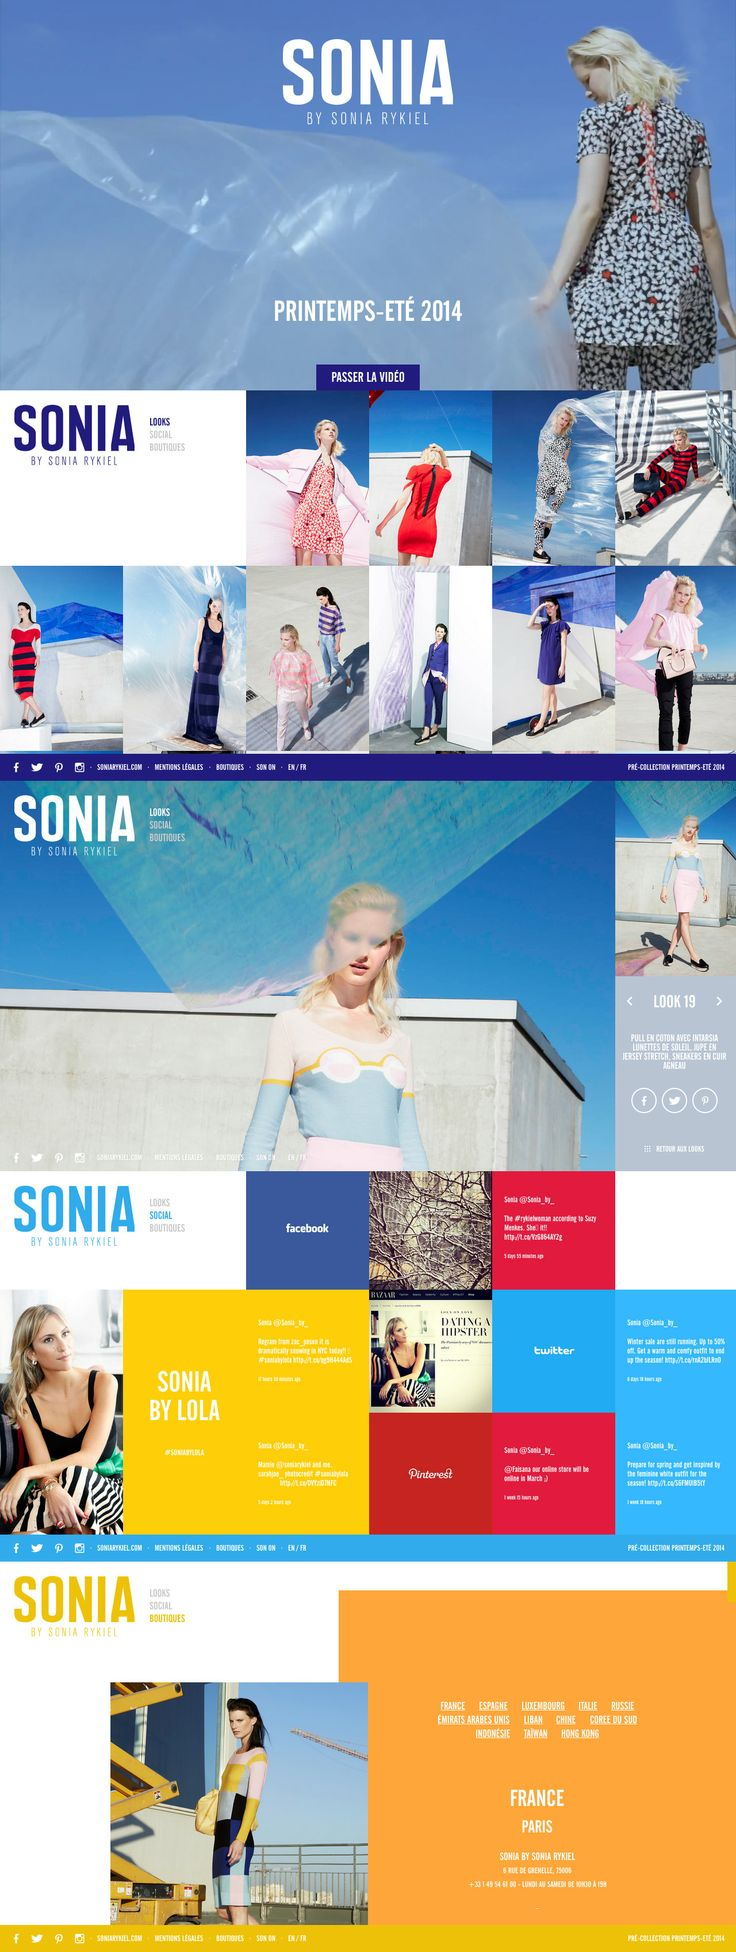 Sonia By Sonia Rykiel  A new pretty cool website for Sonia Rykiel. Nice  smooth transitions. http://soniaby.com